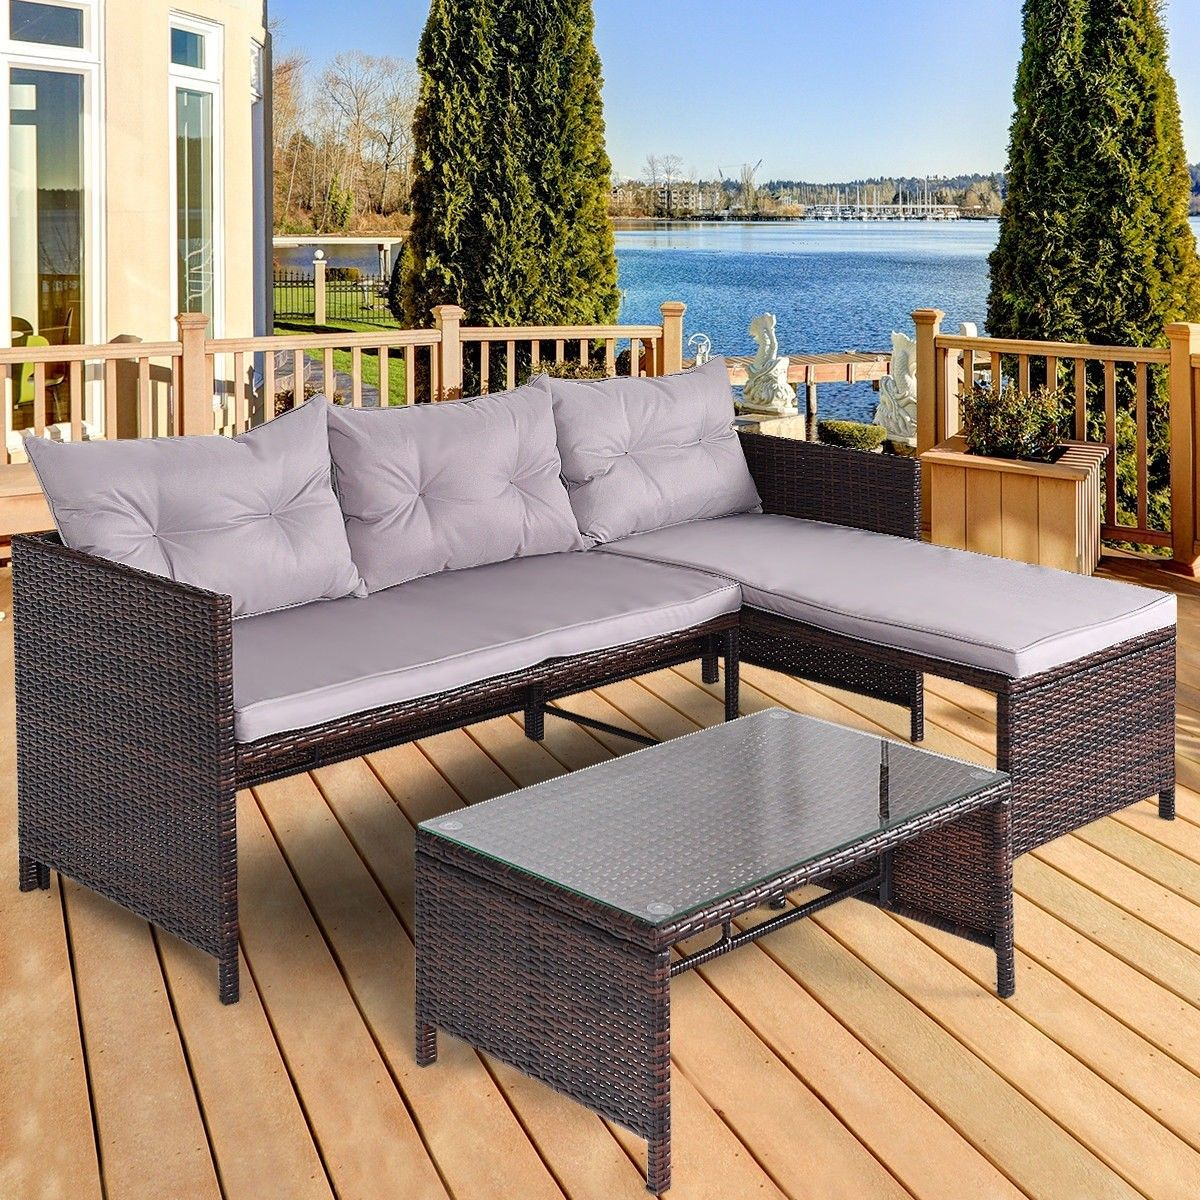 3 Pcs Rattan Wicker Deck Couch Outdoor Patio Sofa Set Furniture